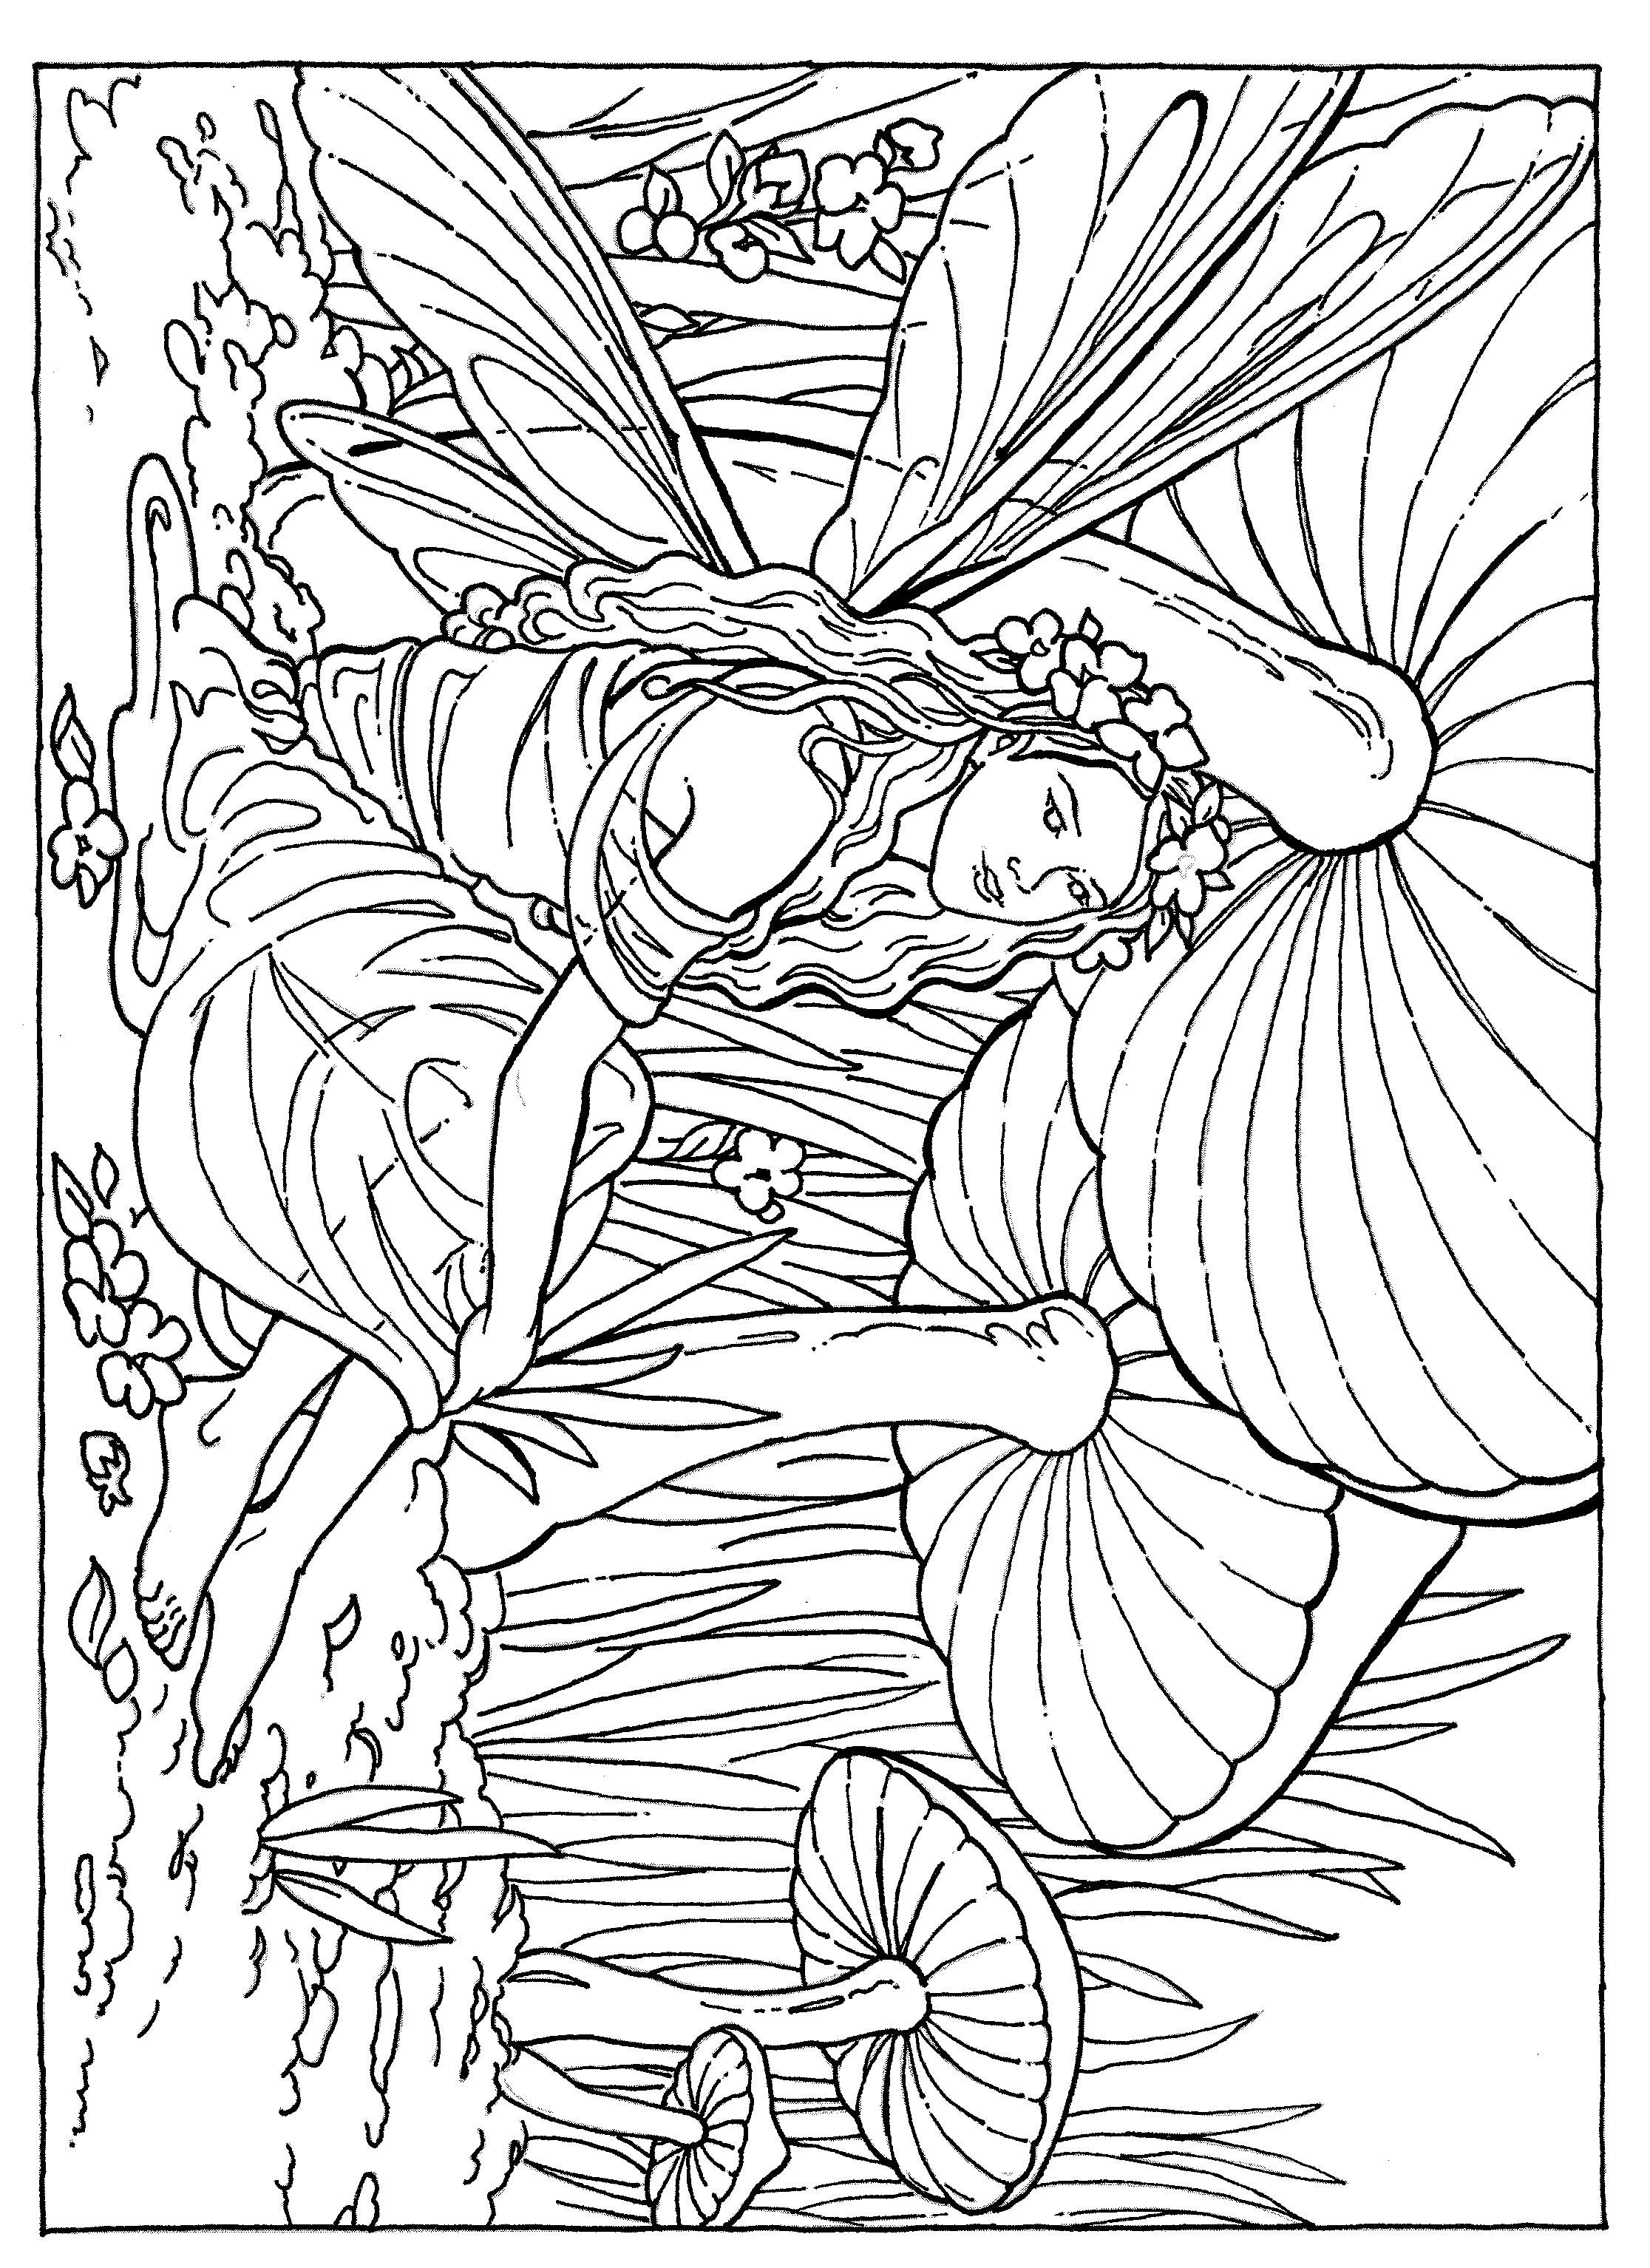 Fairy, Flower, Coloring Page | ILLUSTRATION / INSPIRATION ...